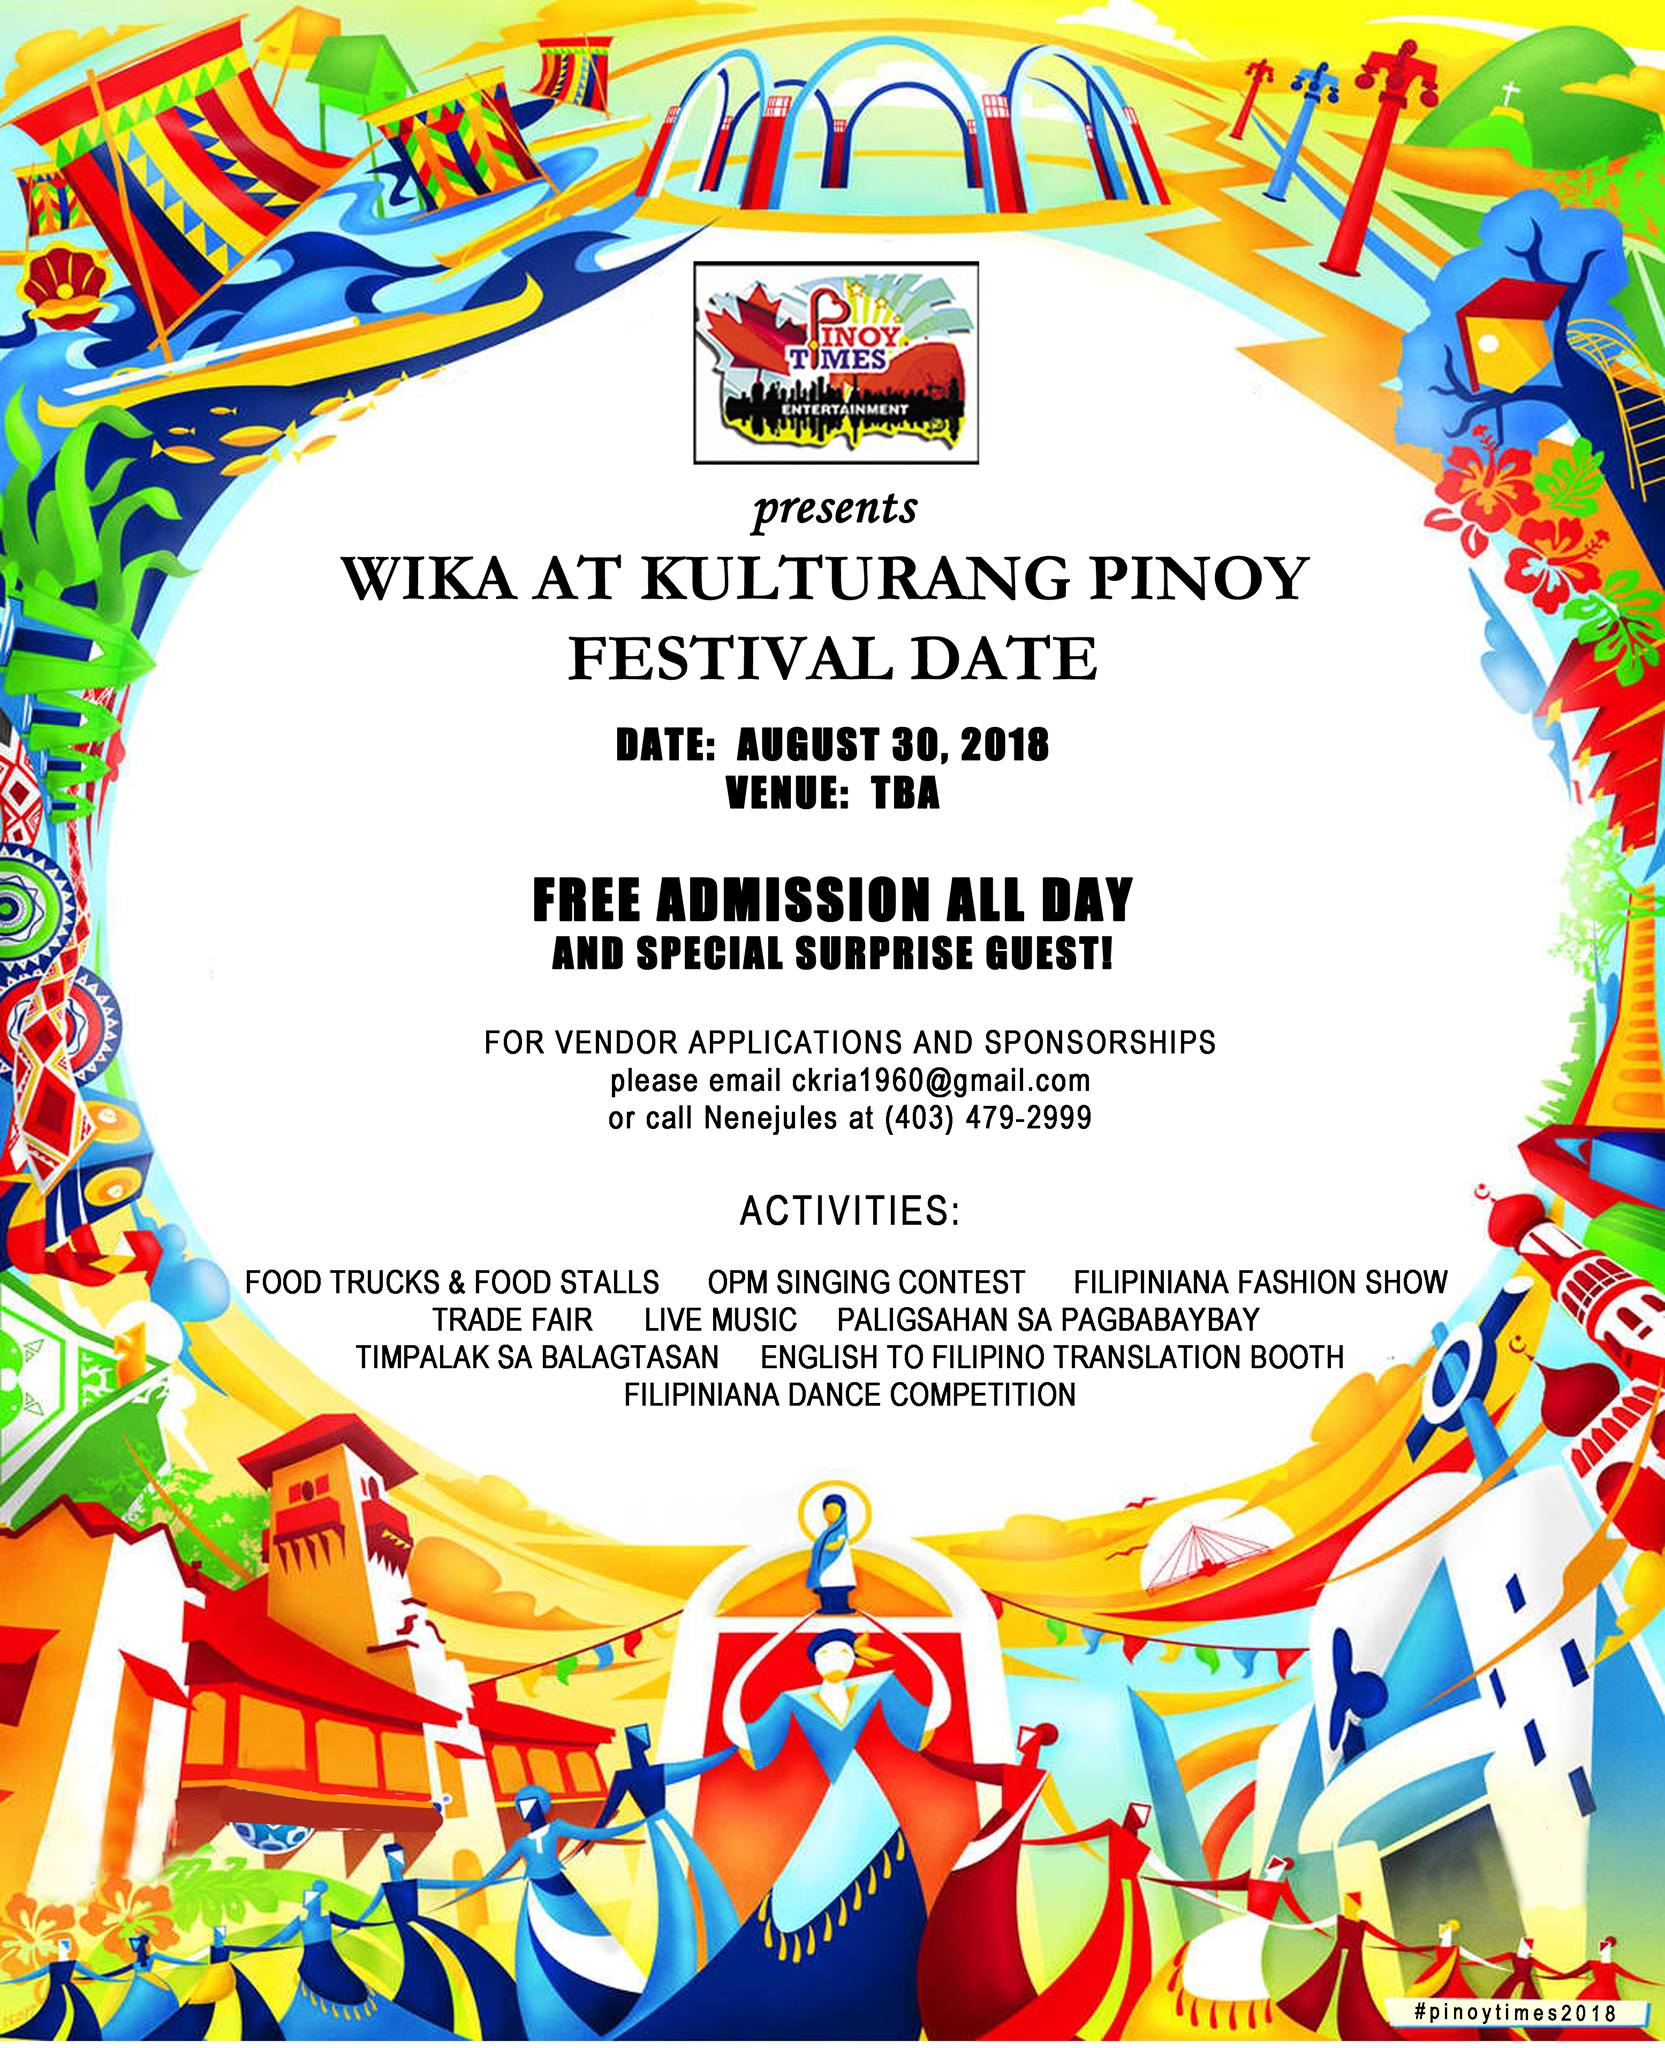 Wika at Kulturang Pinoy Festival | Philippine Canadian Inquirer